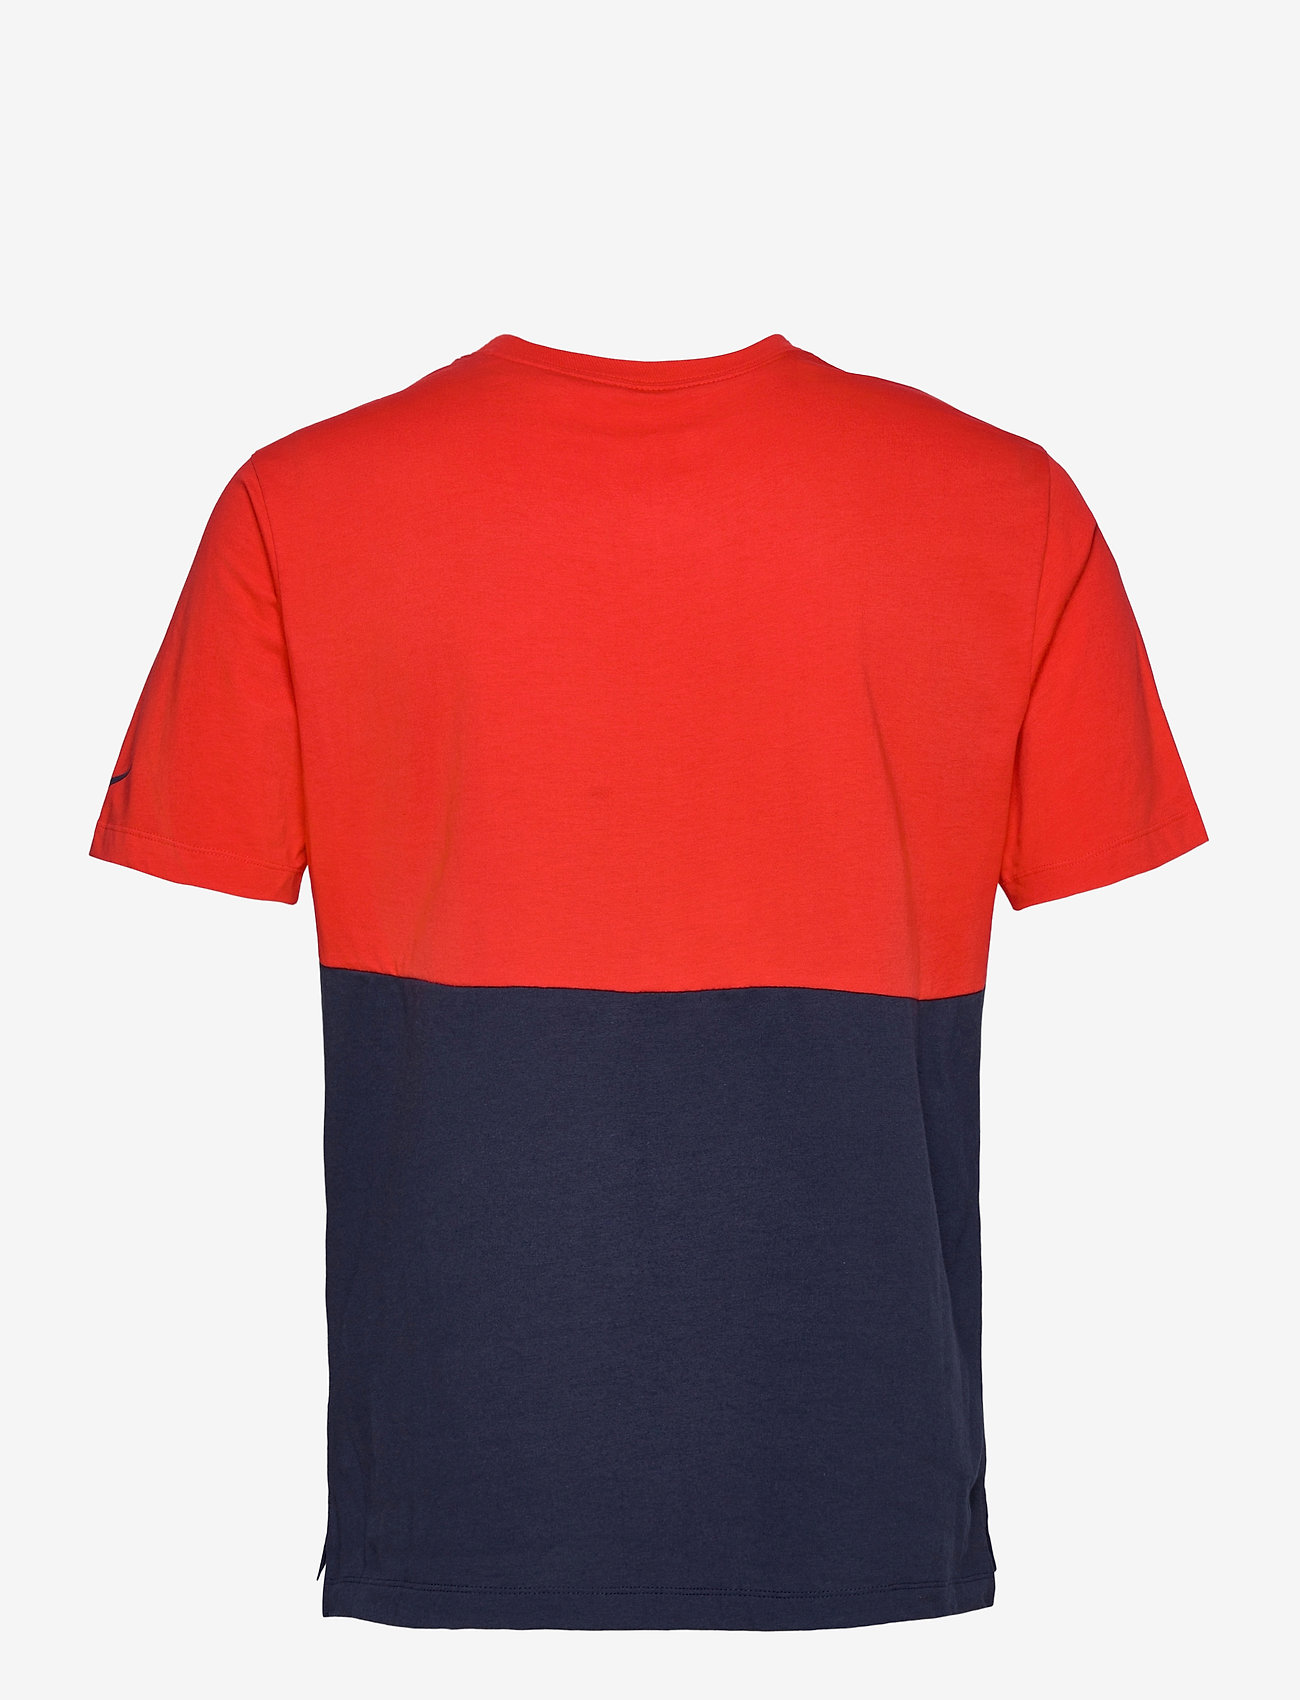 NIKE Fan Gear New England Patriots Nike Logo Name Colorblock T-Shirt - T-skjorter UNIVERSITY RED / COLLEGE NAVY - Menn Klær